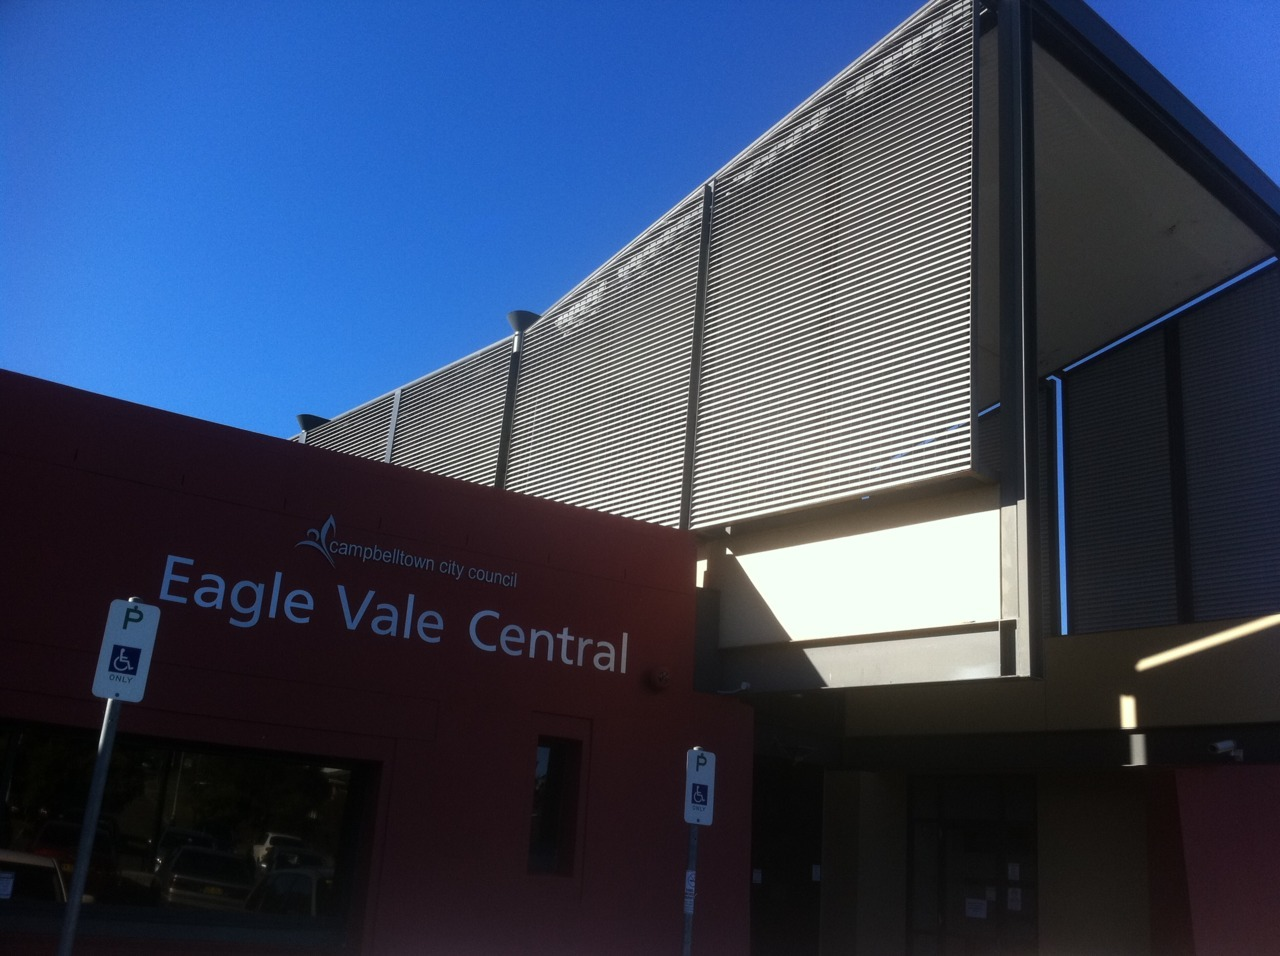 Lighting Centre Campbelltown Eagle Vale Central9am Tuesday 4 90 Entry So Begins The